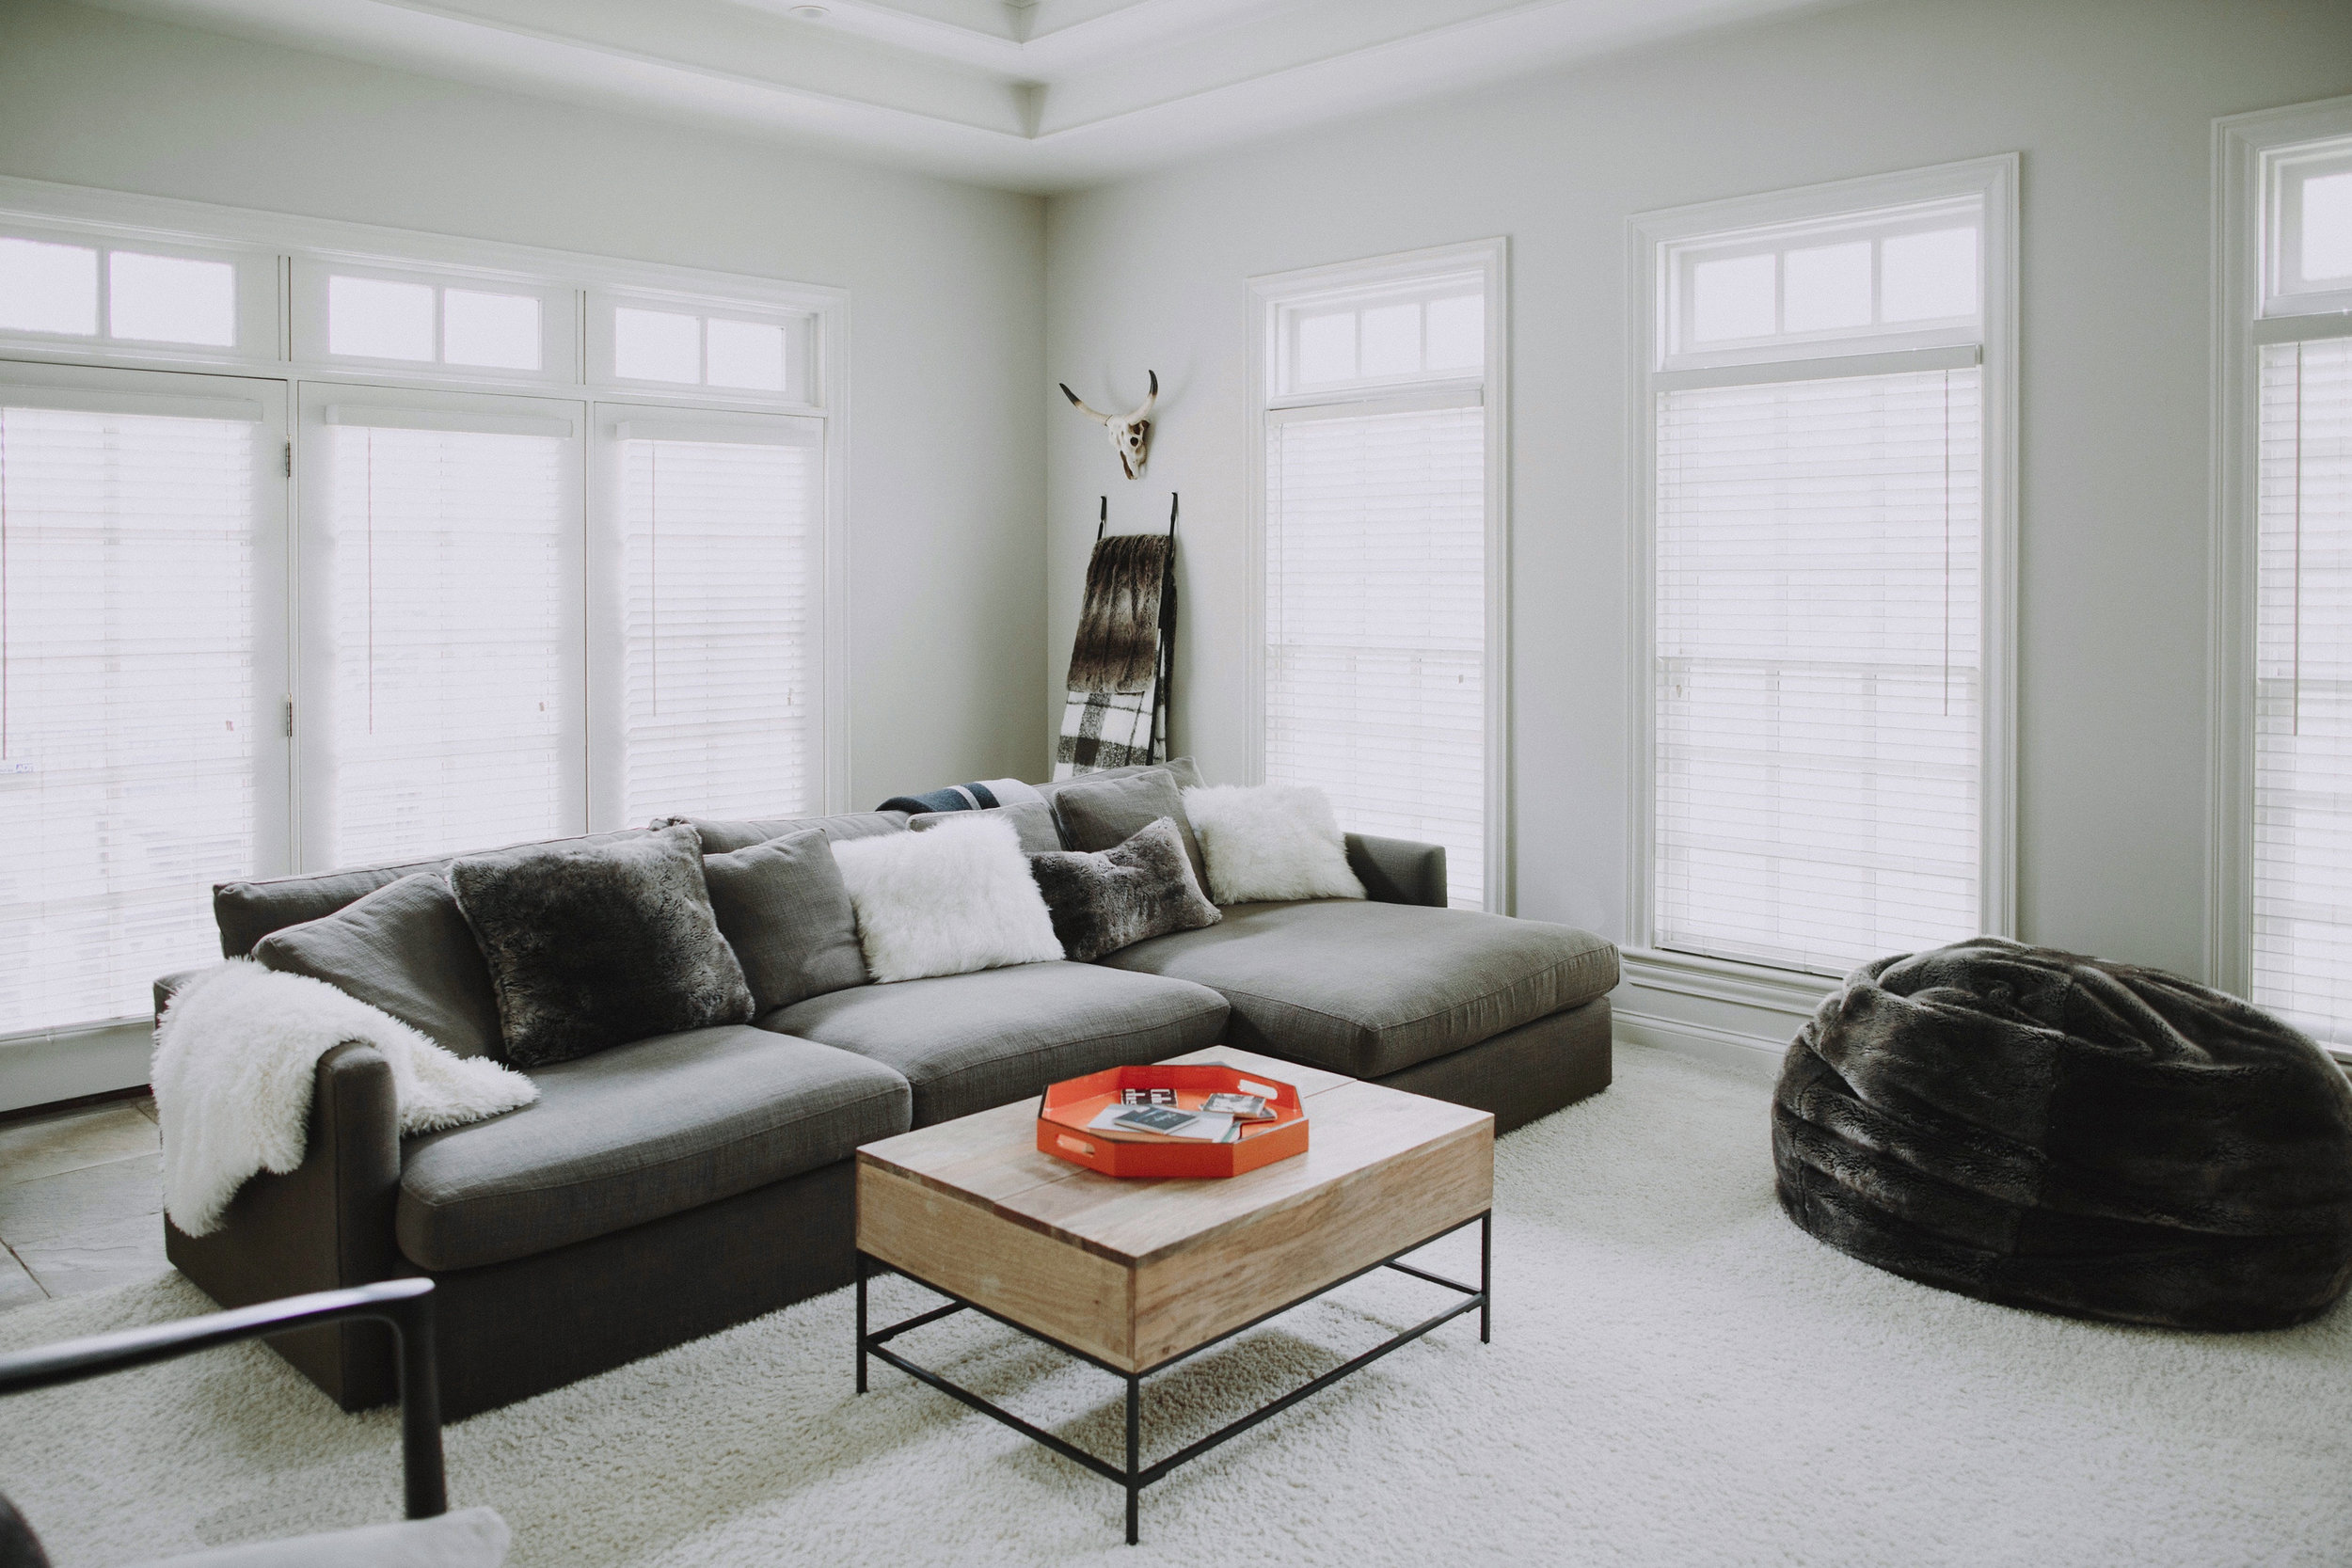 SPACES BY STEINITZ Neutral Family Home Living Room